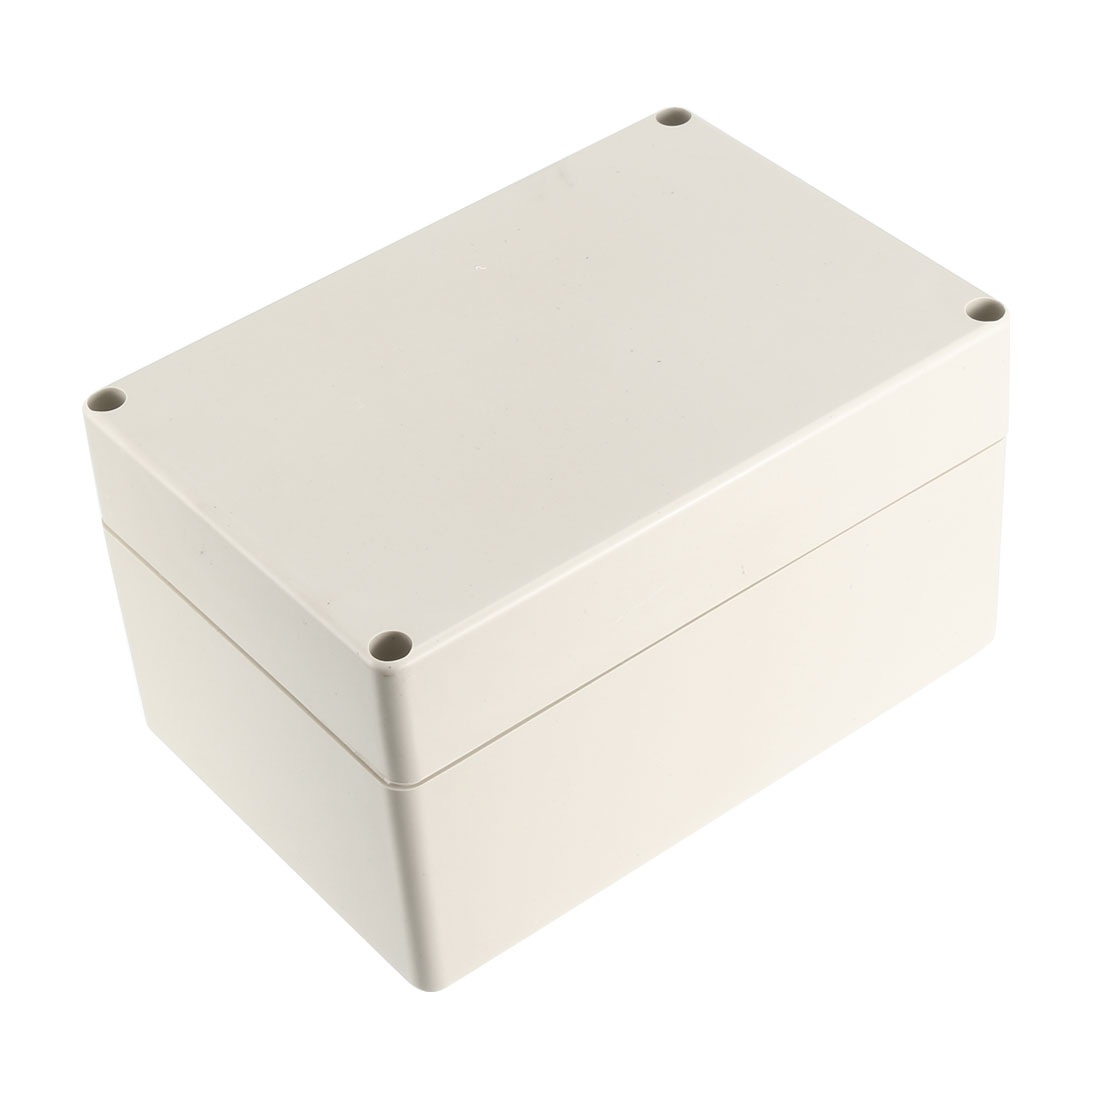 Outdoor Plastic Enclosure Industrial Project Junction Box 160x110x90mm